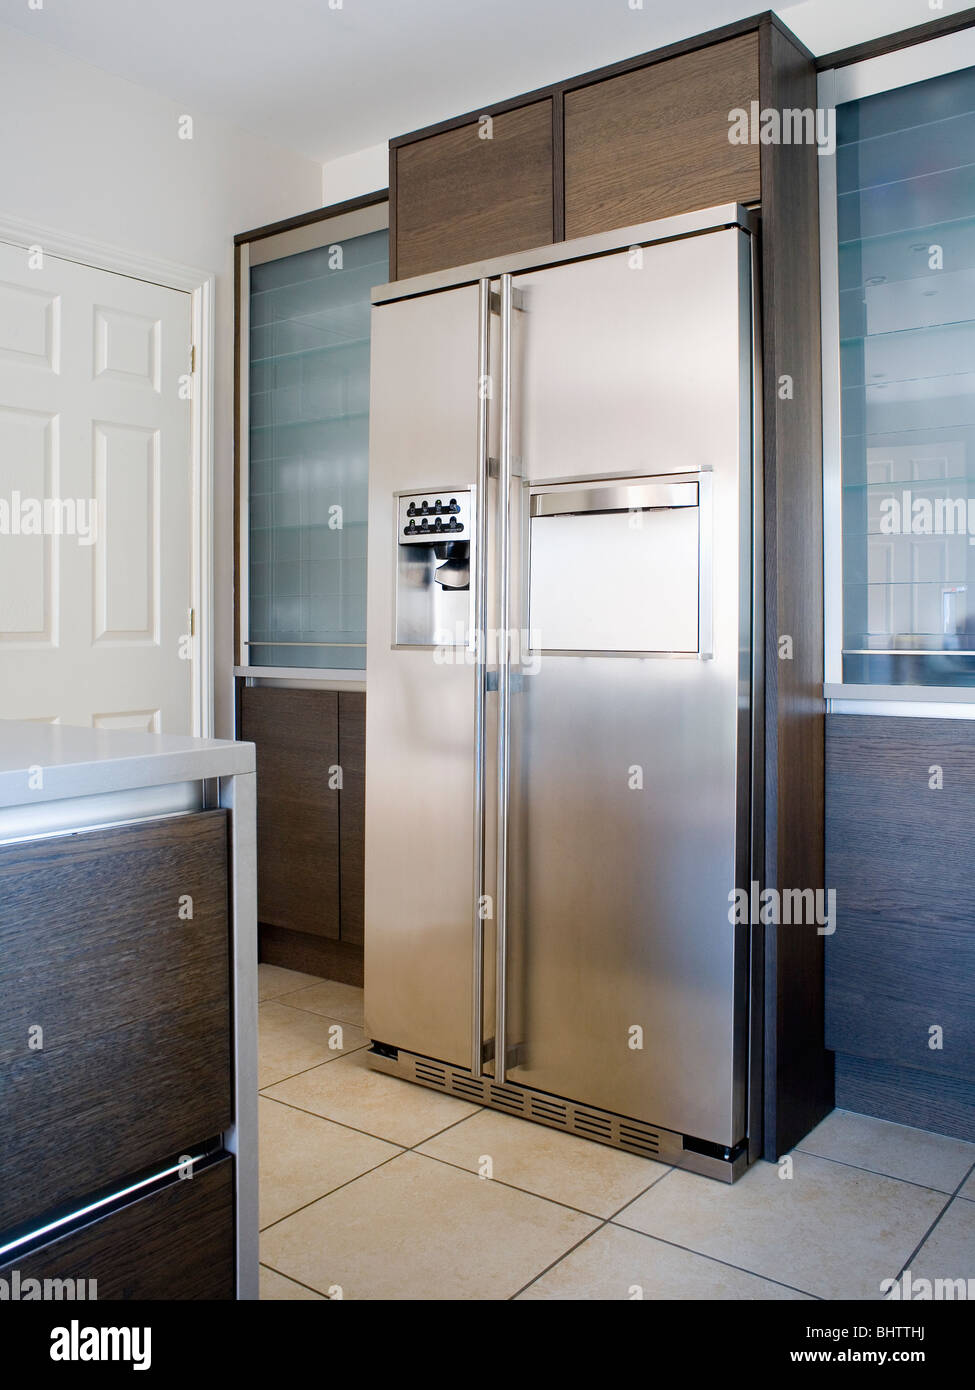 Large American Fridge Freezer Part - 26: Large American-style Stainless-steel Fridge-freezer In Modern Kitchen